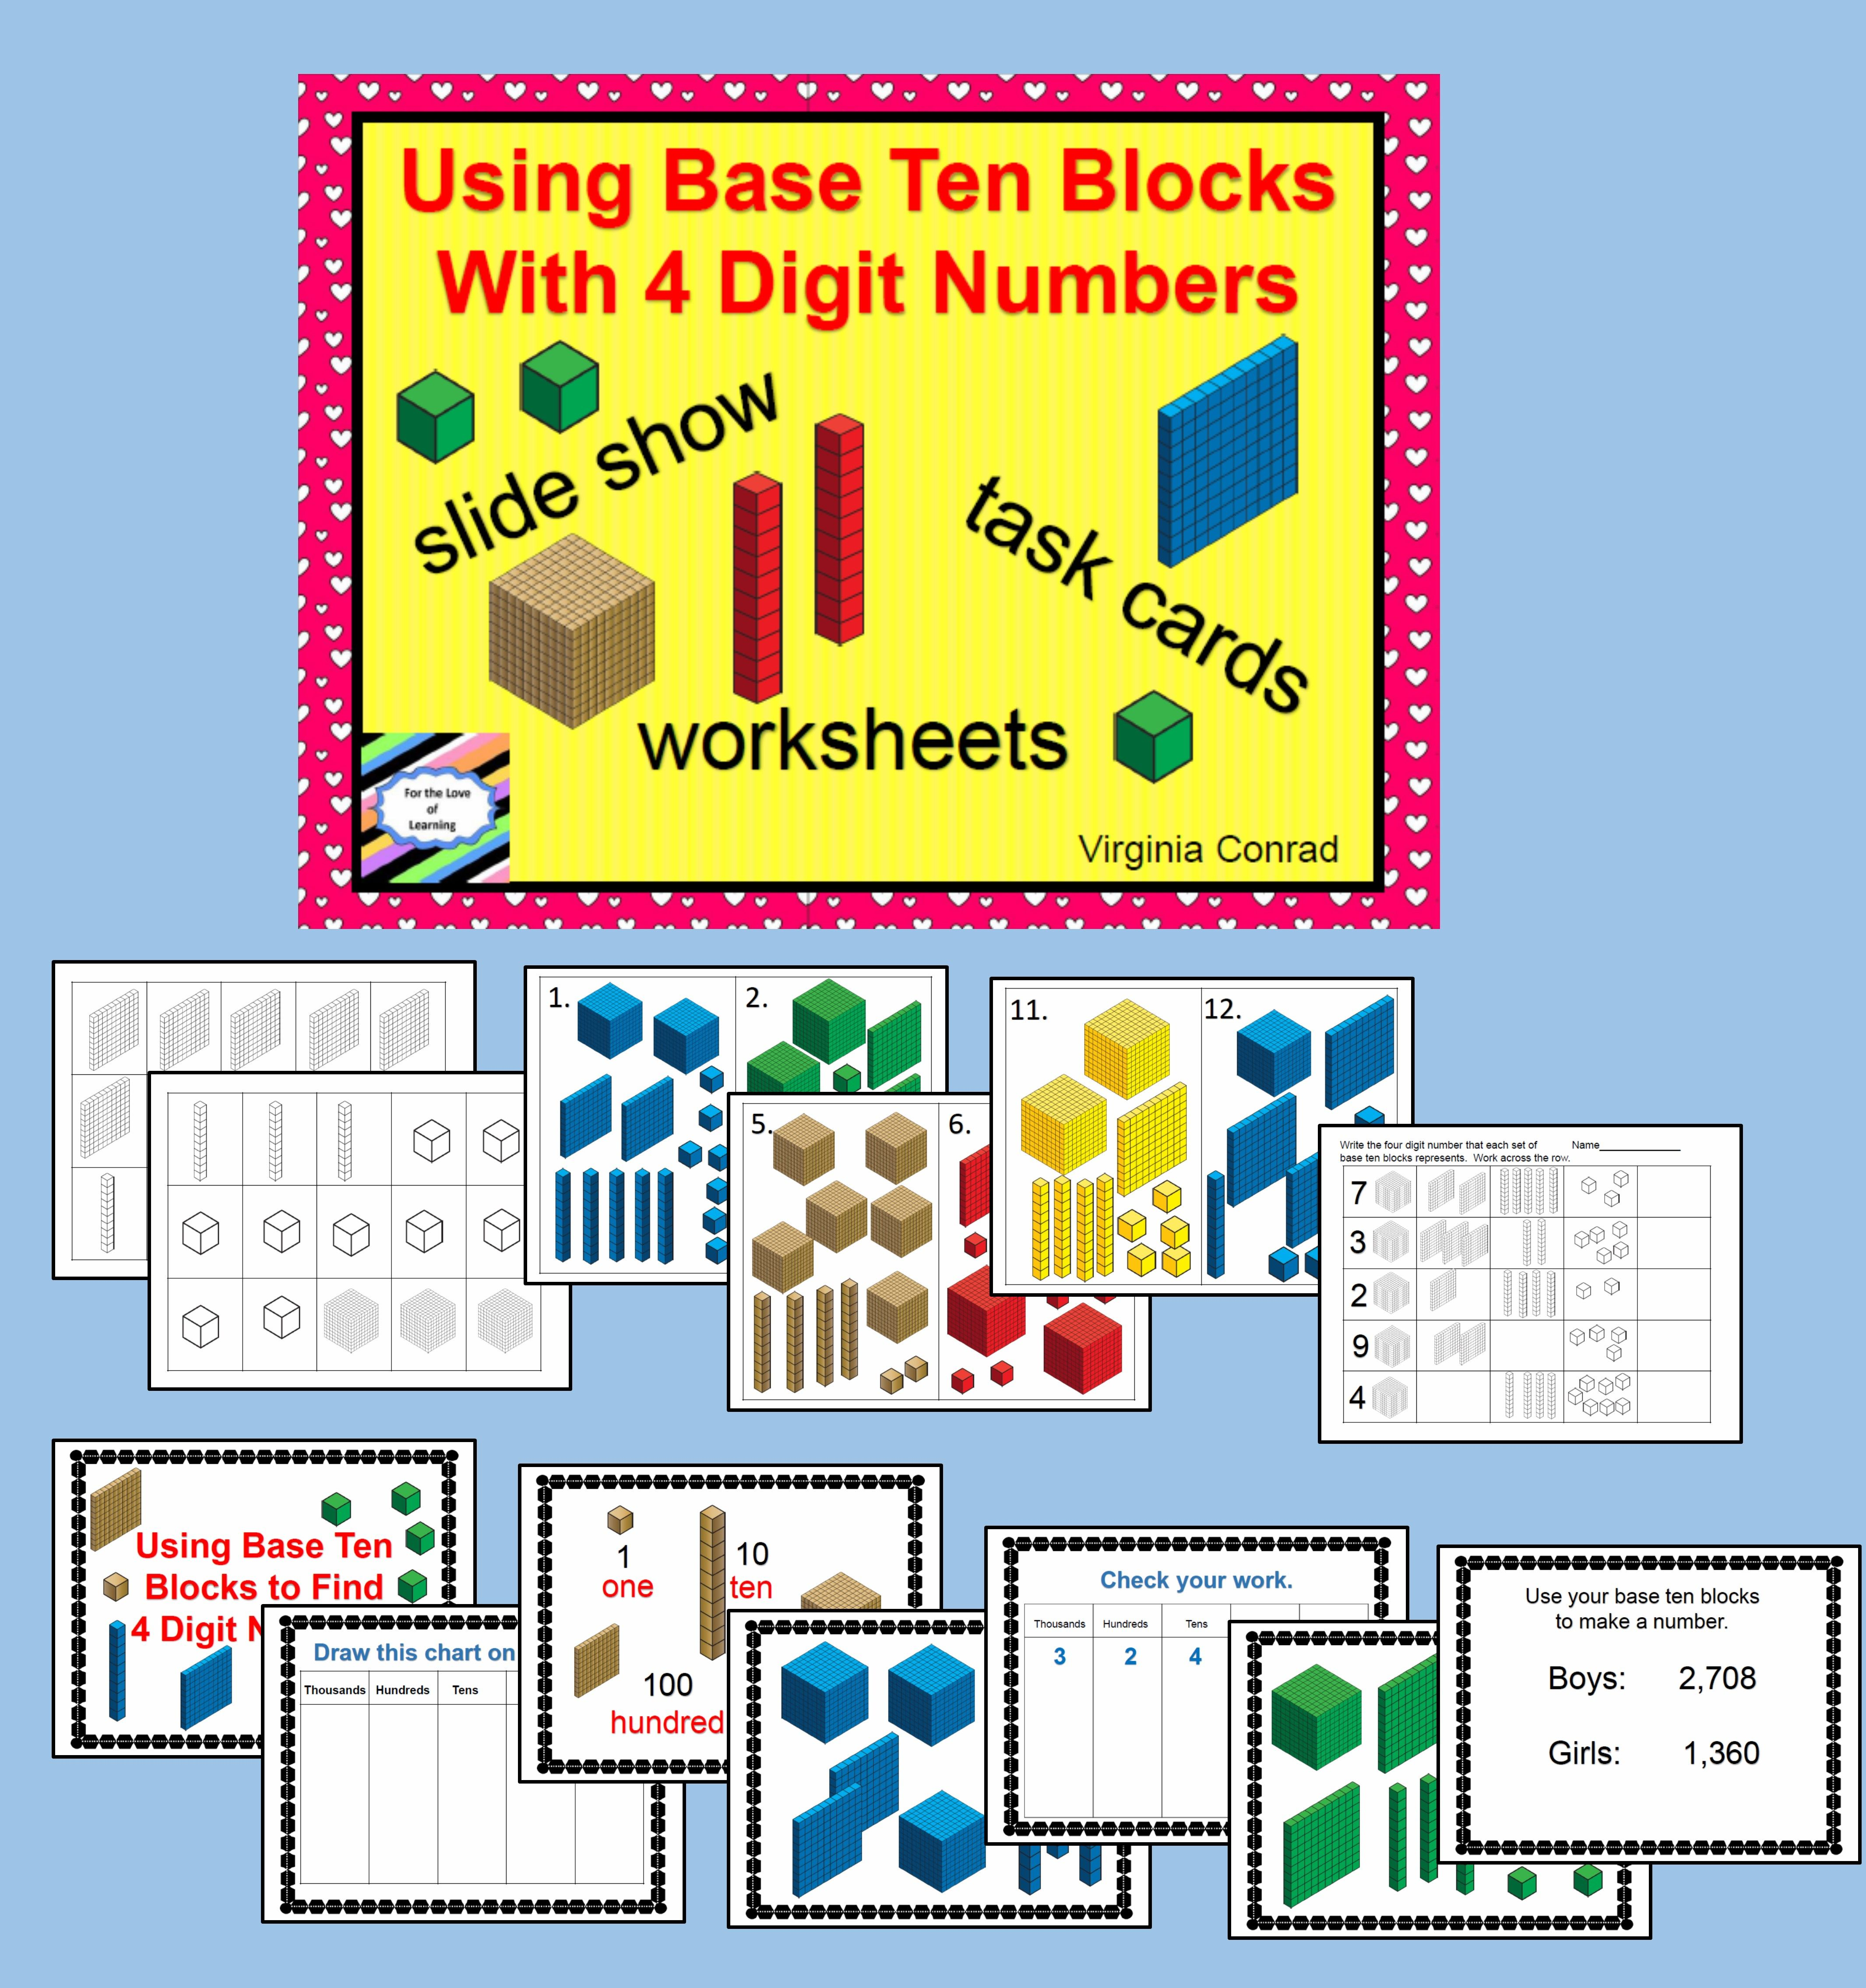 Supplemental Materials For Practicing Using Base 10 Blocks With 4 Digit Numbers Base Ten Blocks Task Card Centers Math Materials Adding digit numbers with base 10